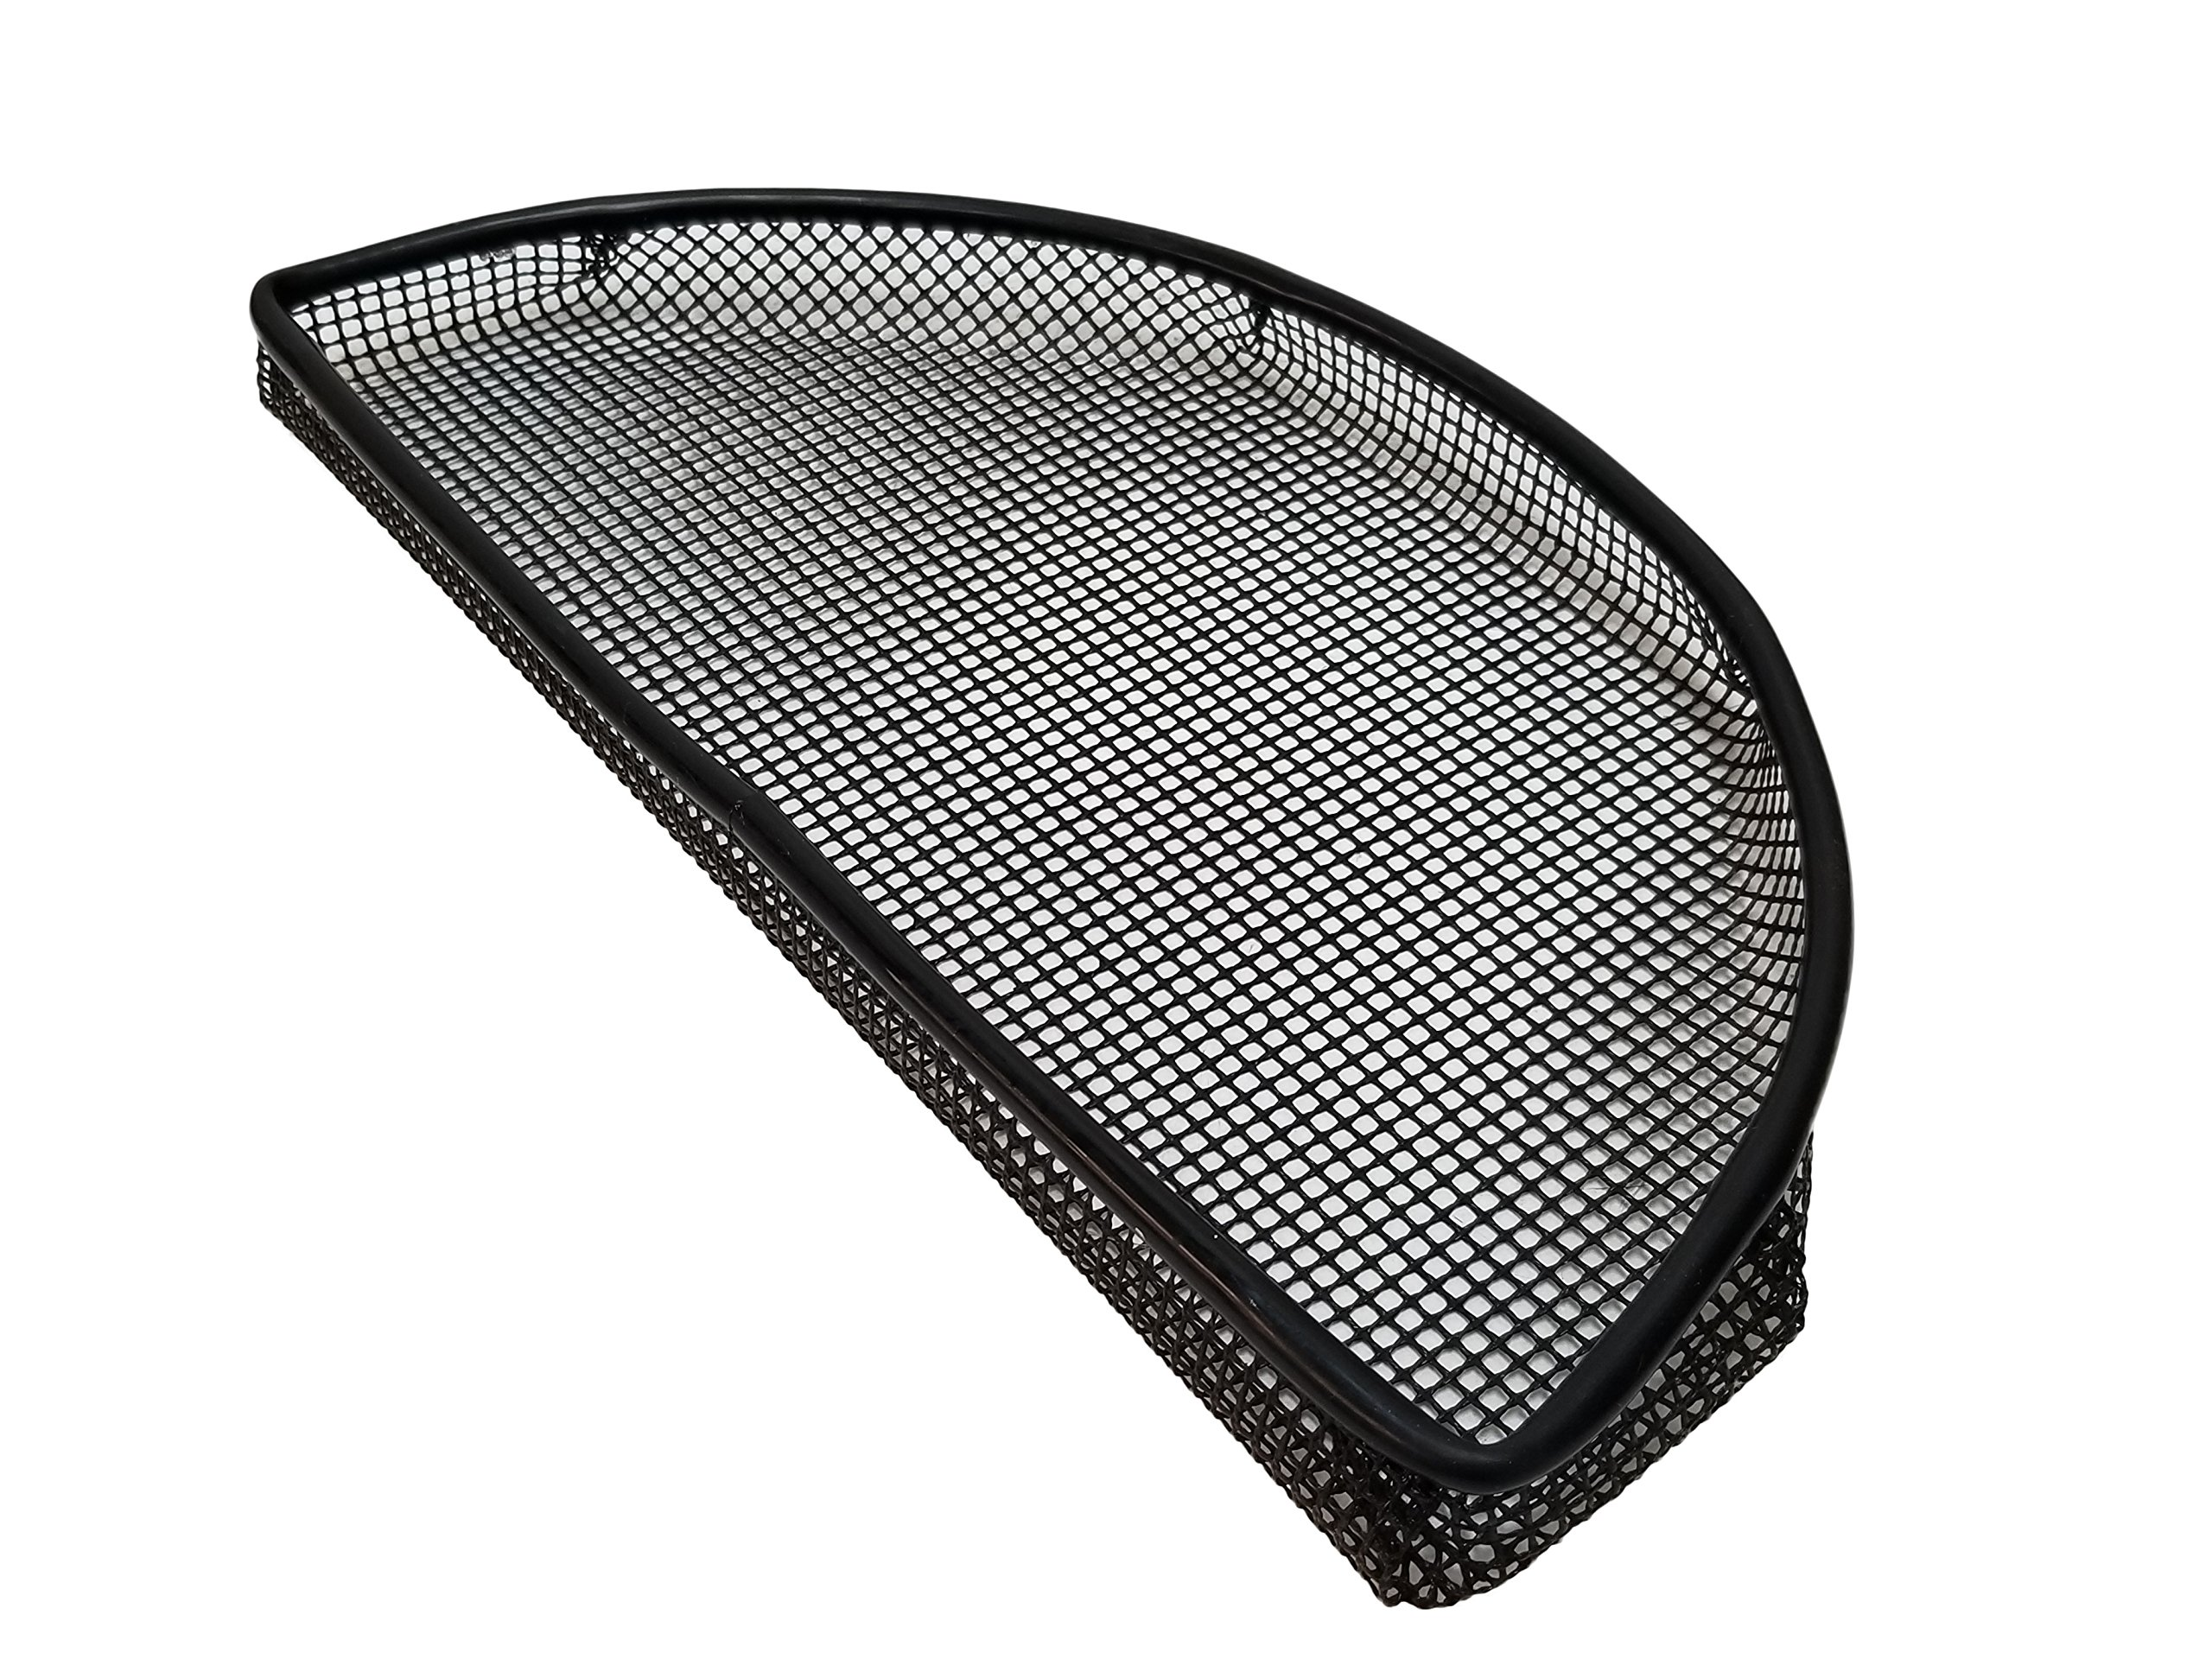 15'' x 8'' PTFE Wide Mesh Half Moon Grill basket with reinforced metal ring for Smokers like The Big Green Egg and other Kamado cookers